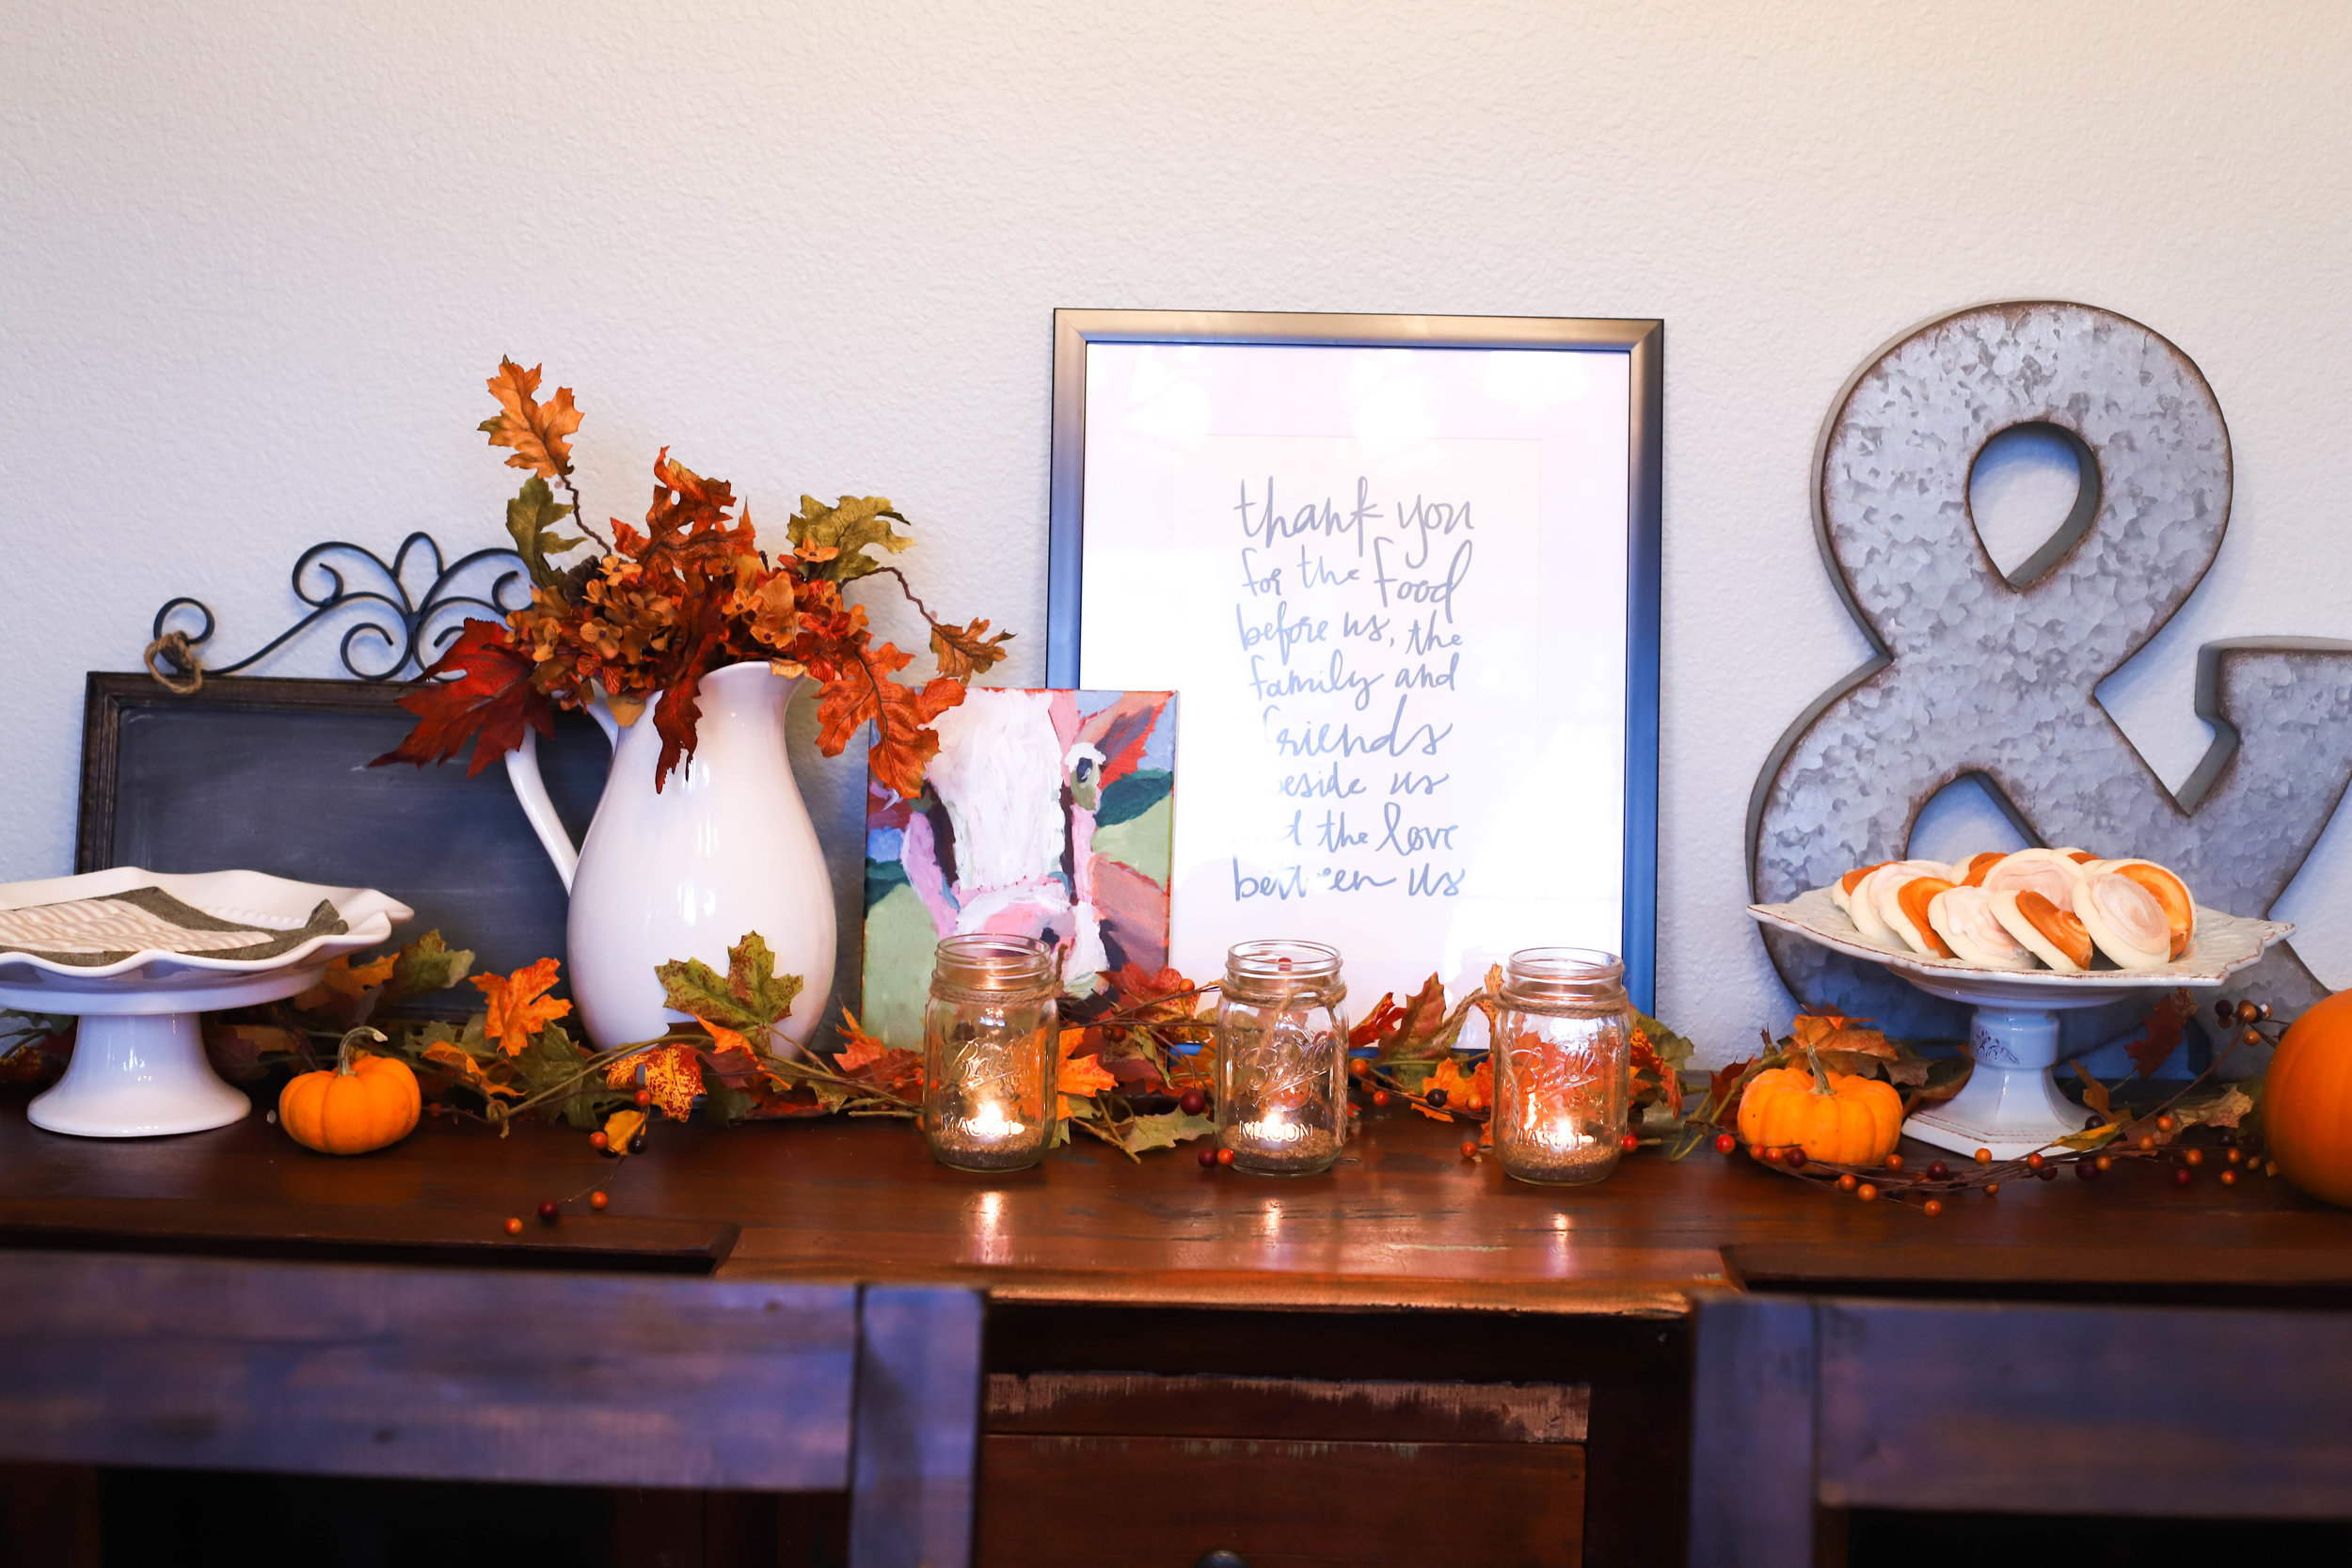 Tips for Hosting Holiday Party